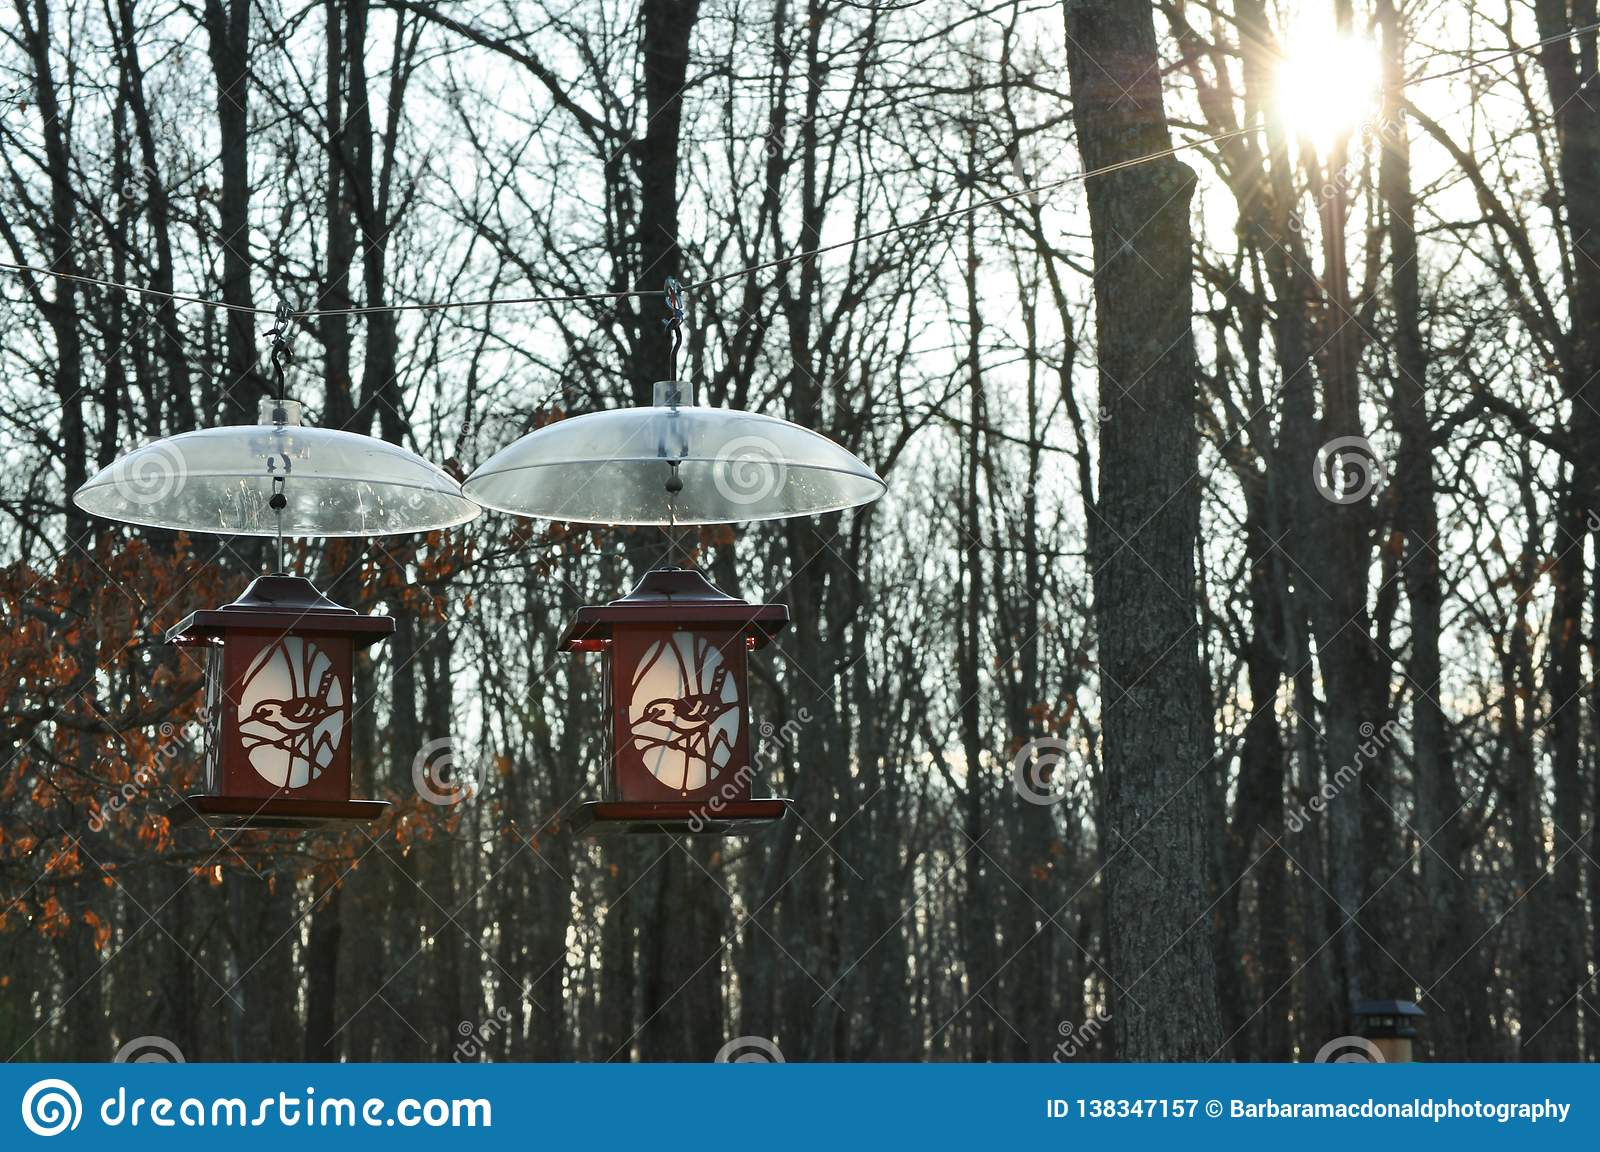 Two Bird Feeders Hanging with Squirrel Shields